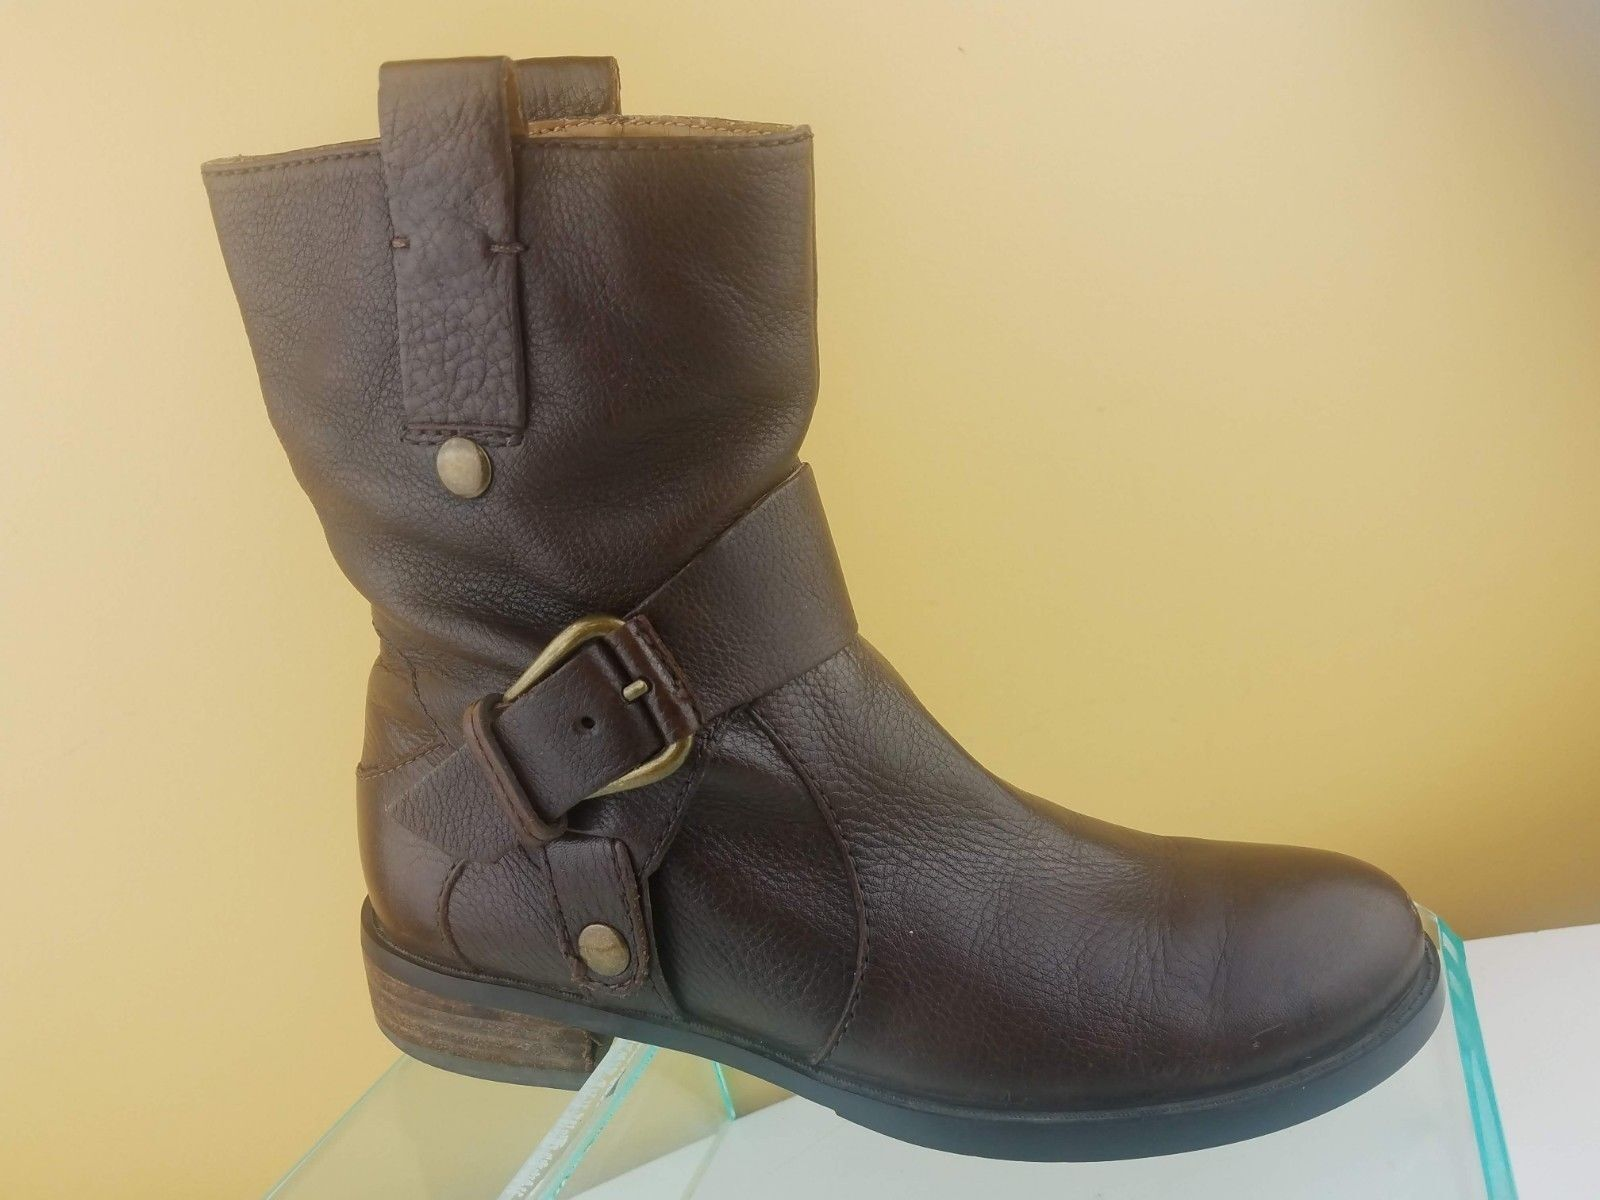 Nine West Tamzie Brown Leather Zip Up Buckle Moto Ankle Boots Womens Sz 5.5 M